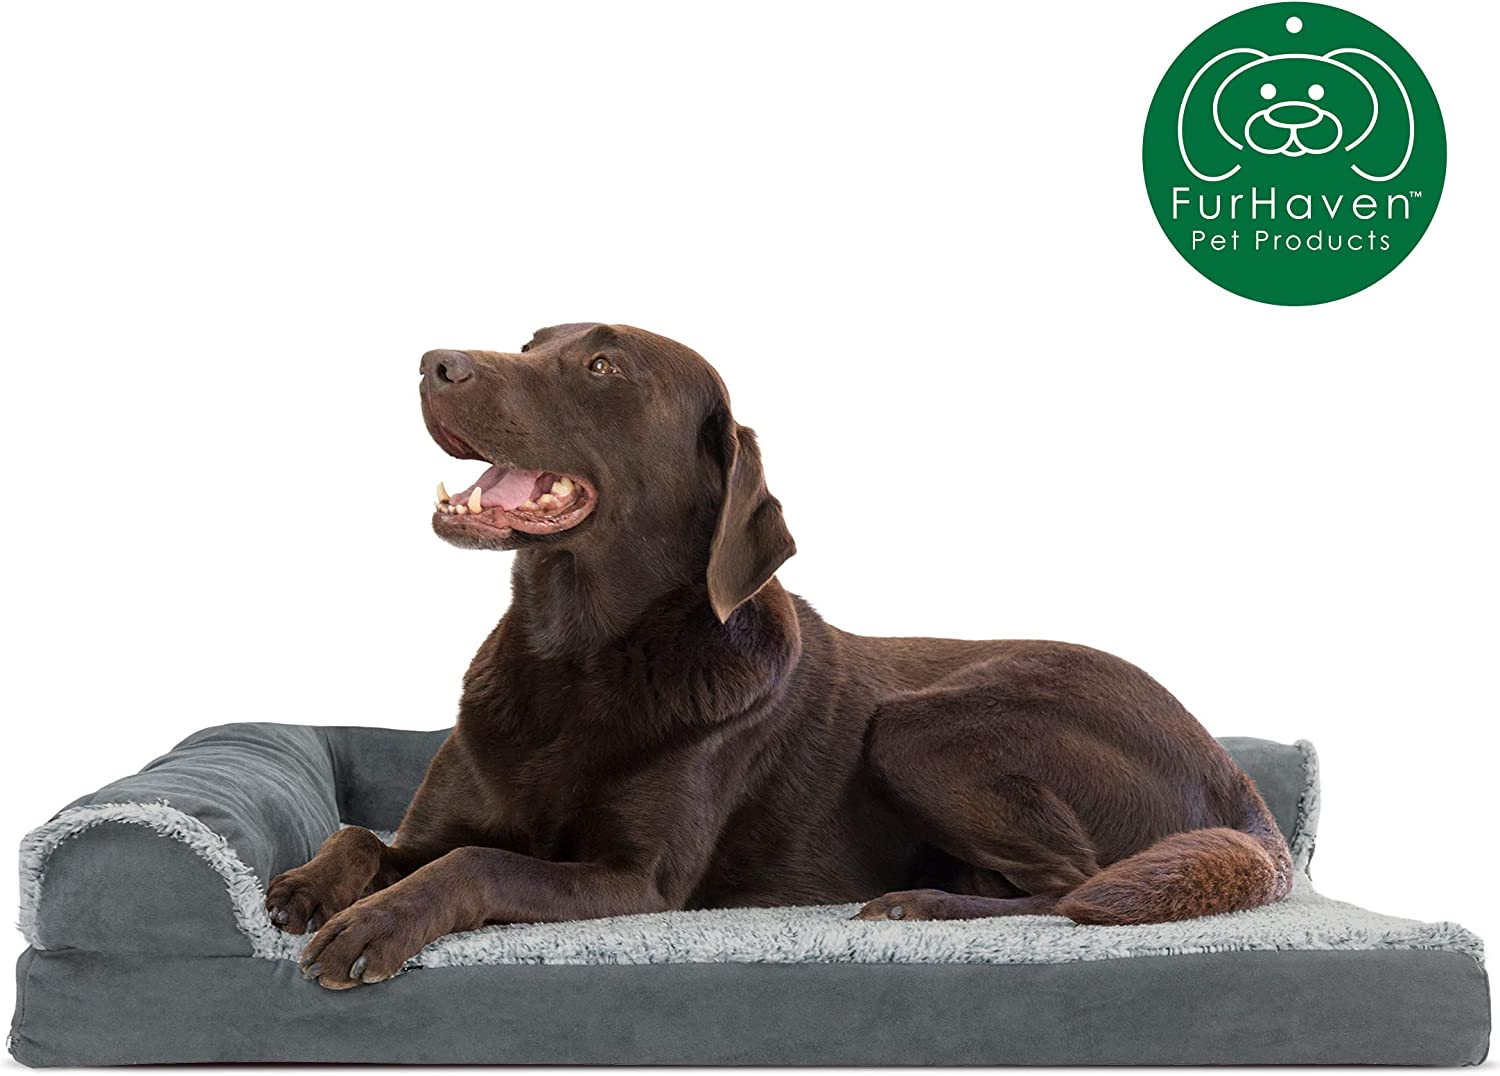 Furhaven Pet Dog Bed - Deluxe Orthopedic Two-Tone Plush and Suede L Shaped Chaise Lounge Living Room Corner Couch Pet Bed with Removable Cover for Dogs and Cats, Stone Gray, Large : Pet Supplies